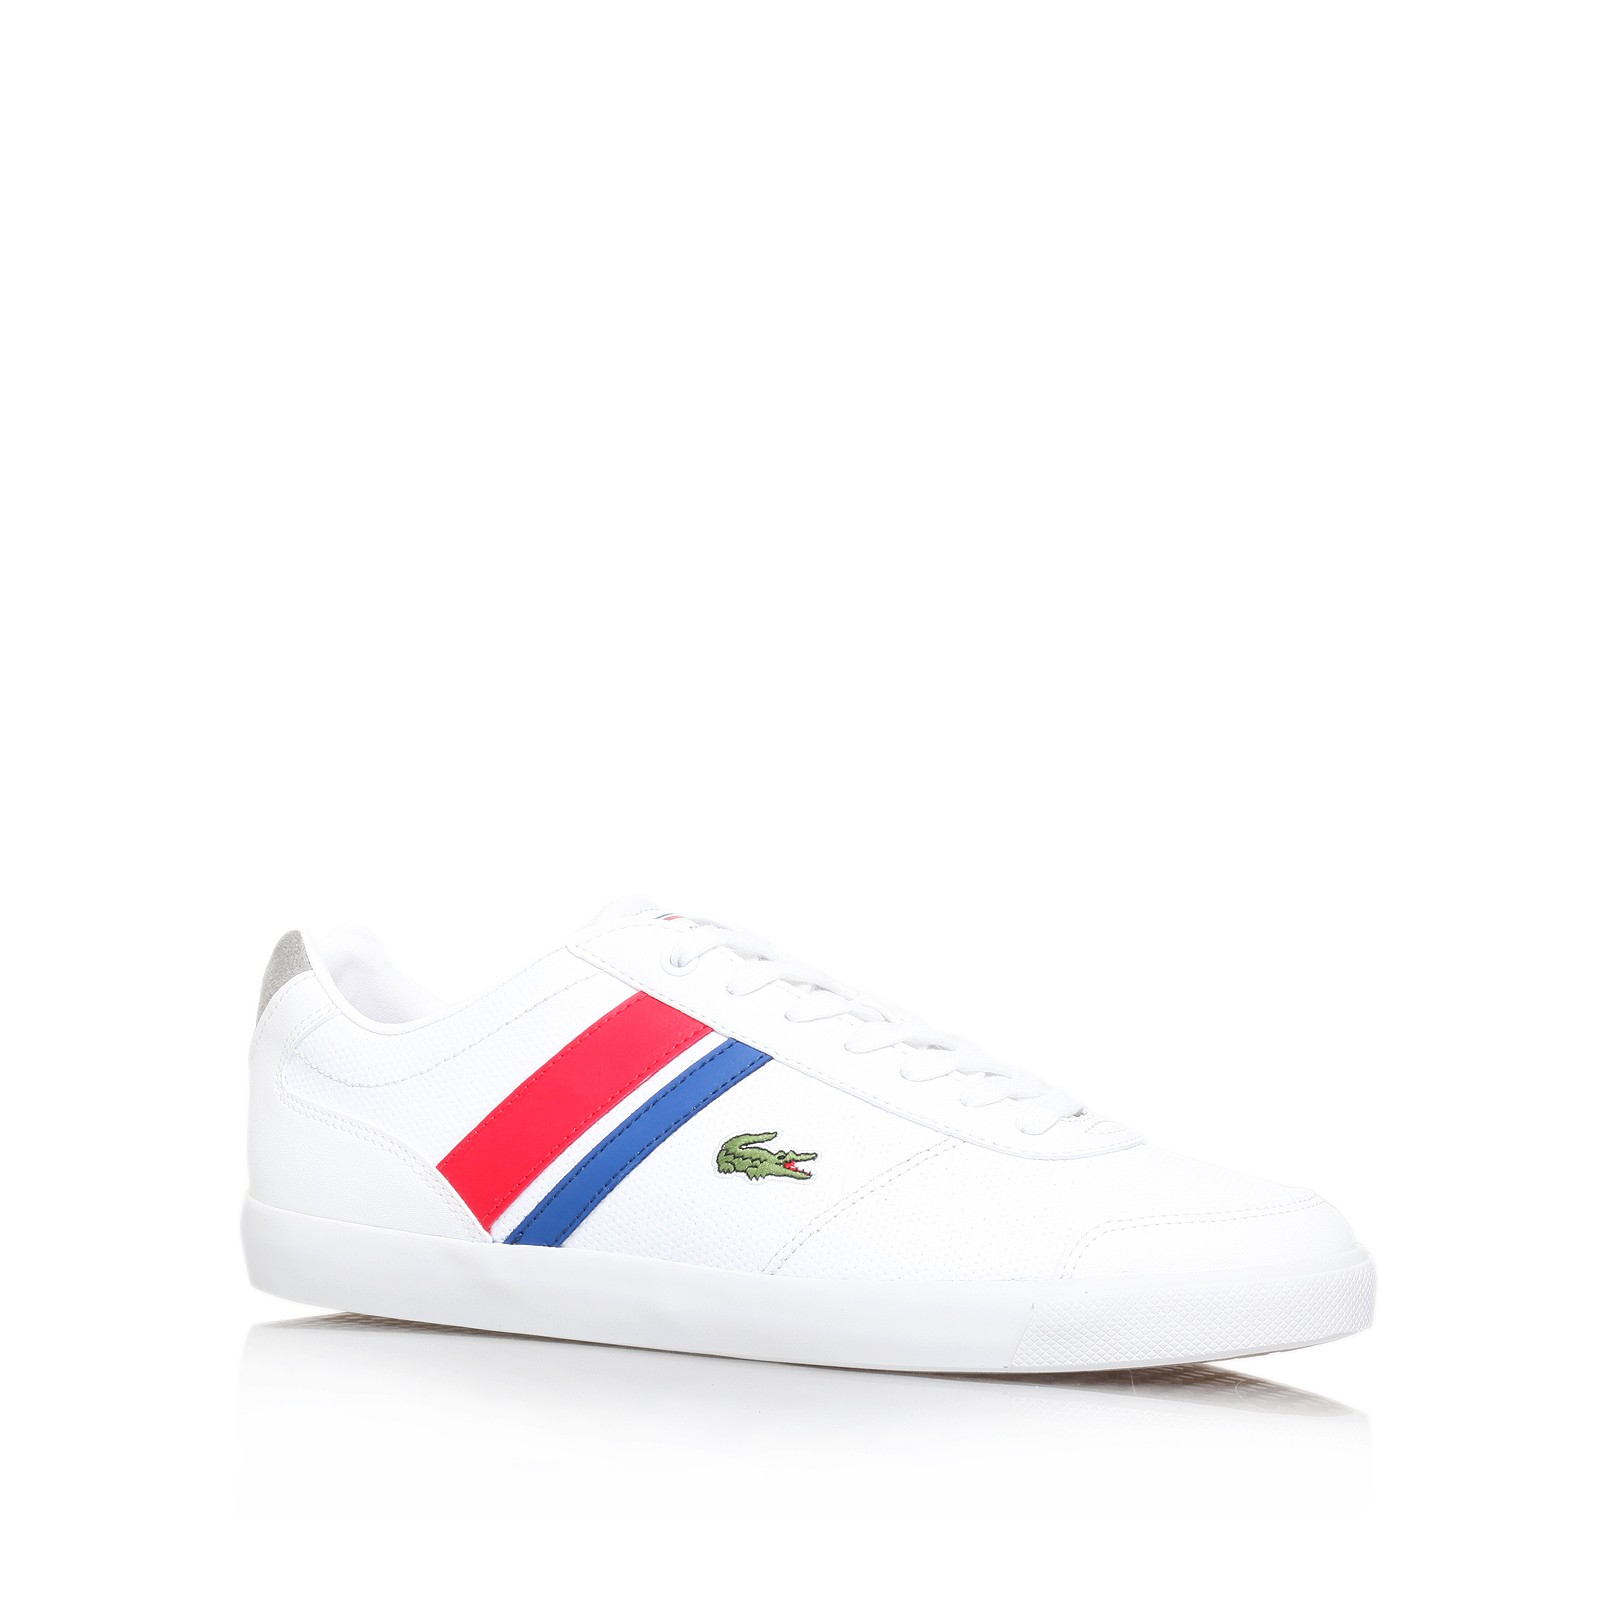 d9e62defdf7da Lacoste Comba Pri Spm Wht Red in White for Men - Lyst